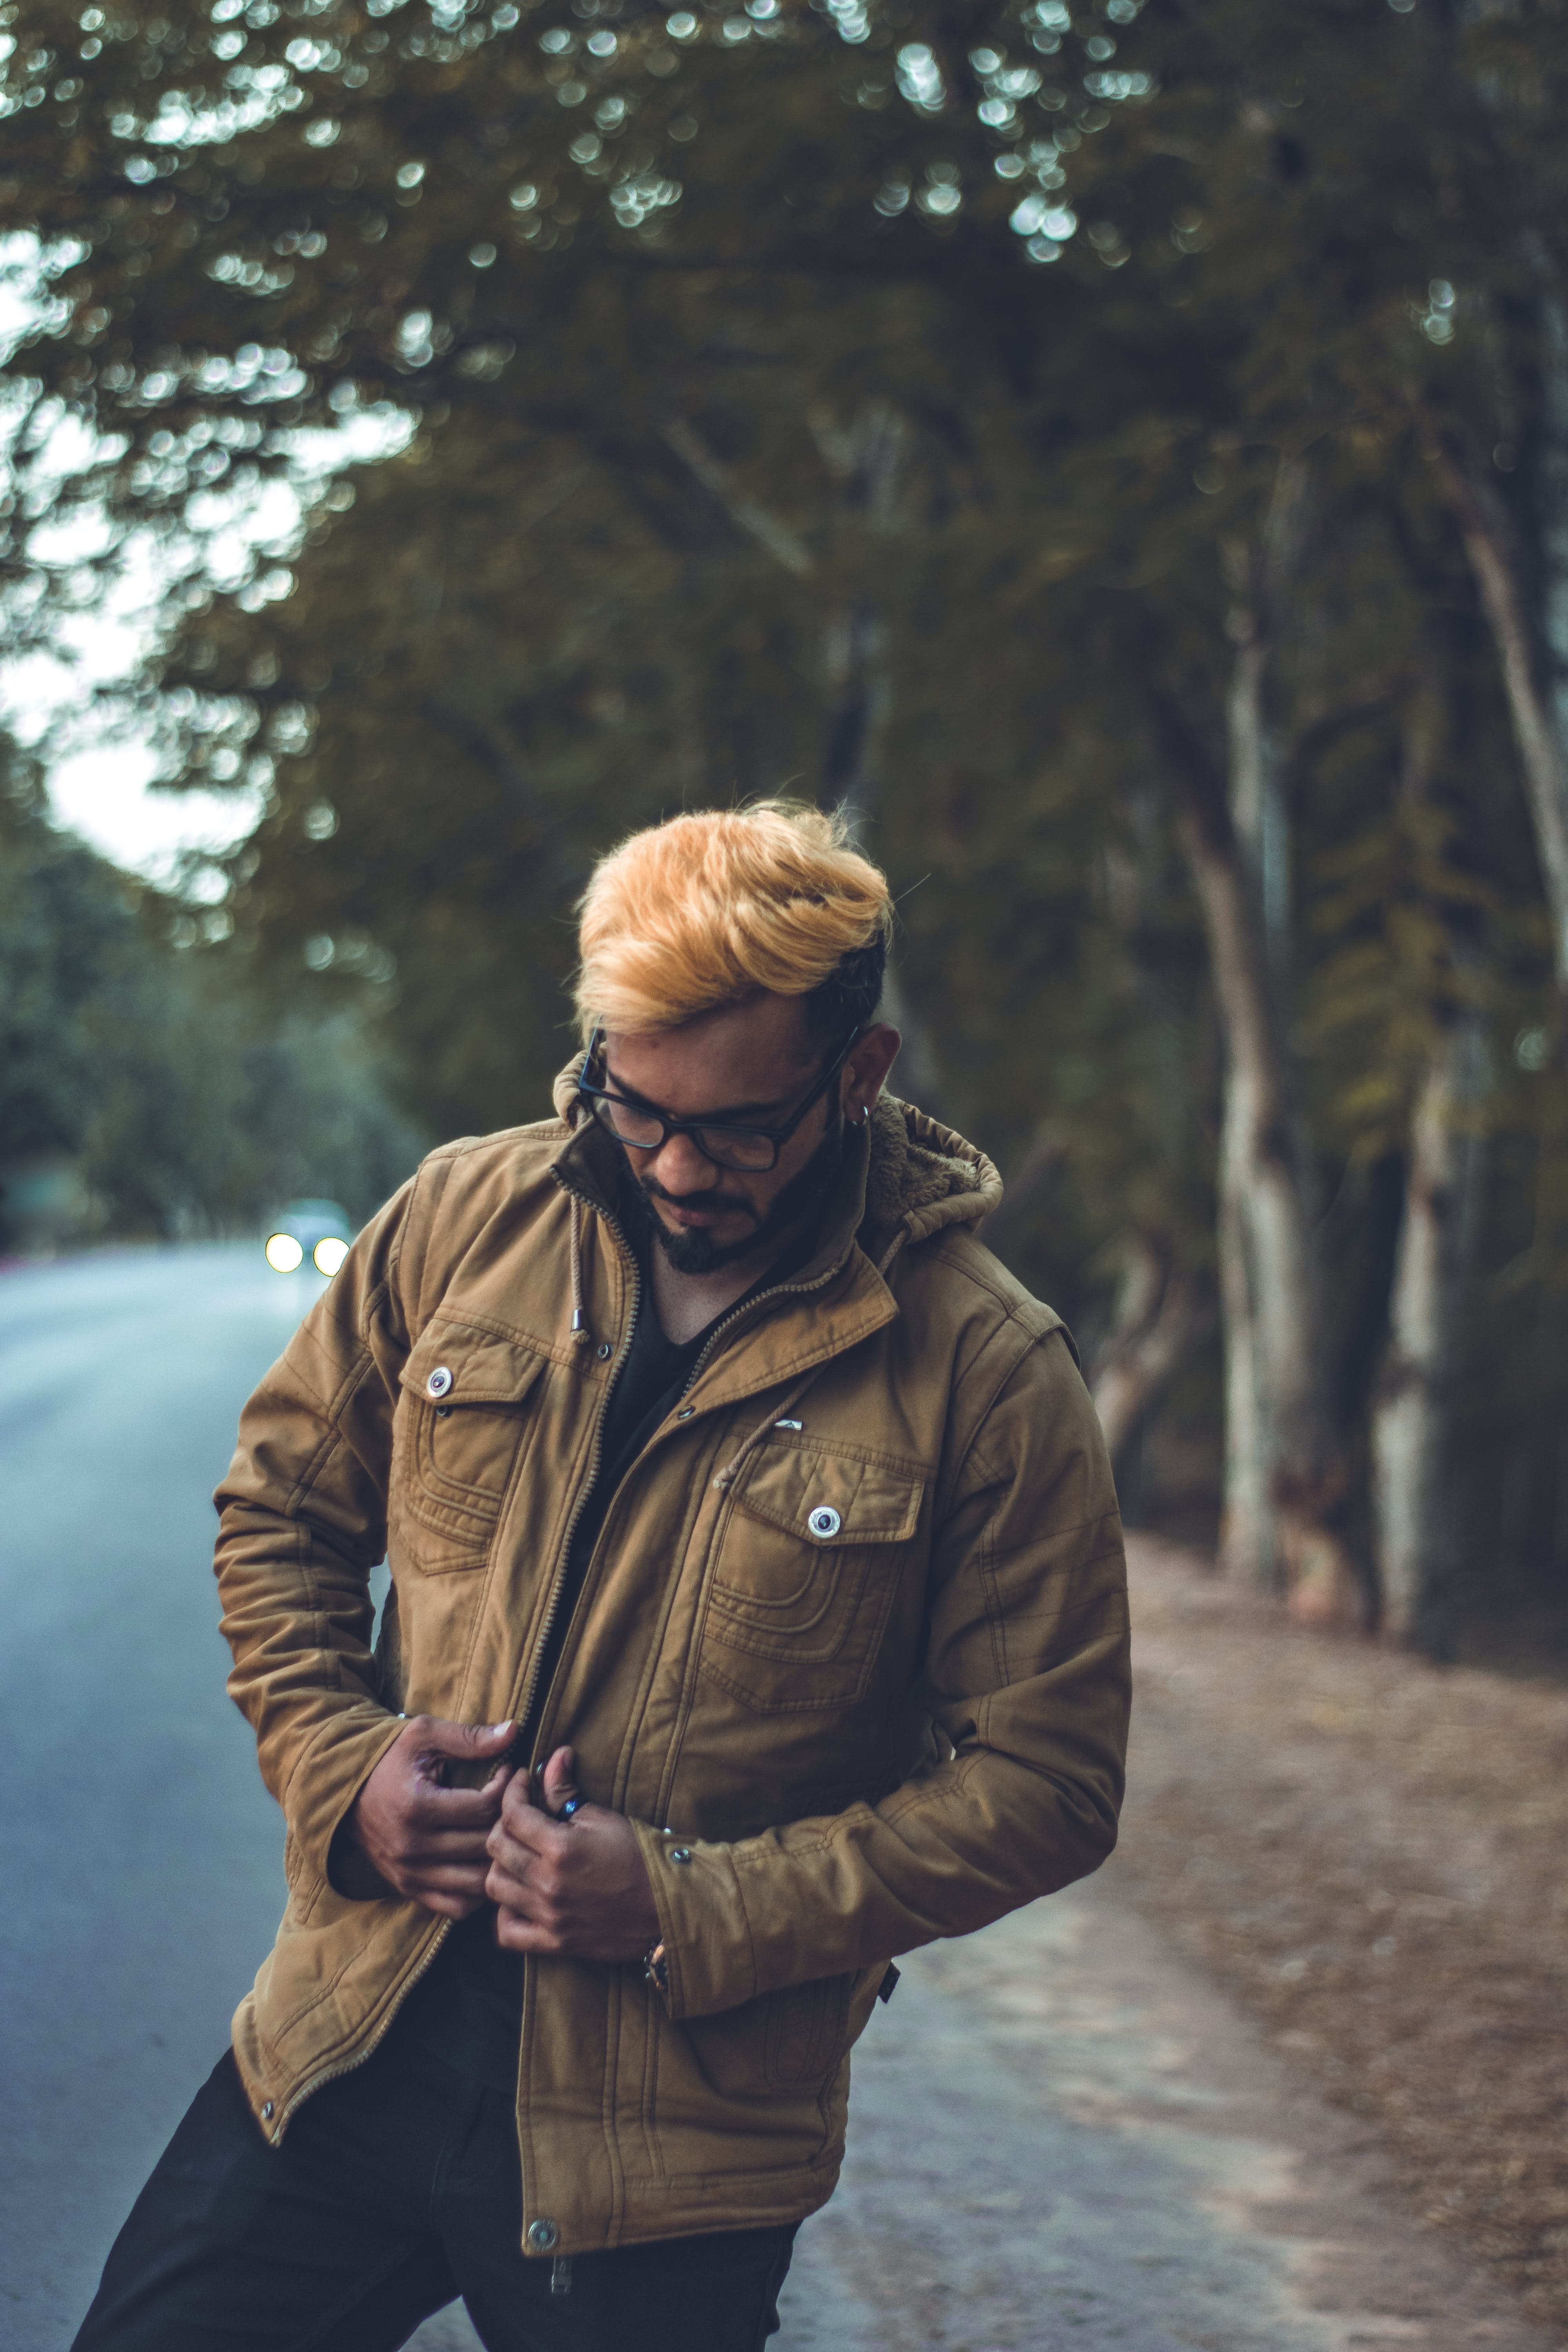 Free stock photo of winter jacket